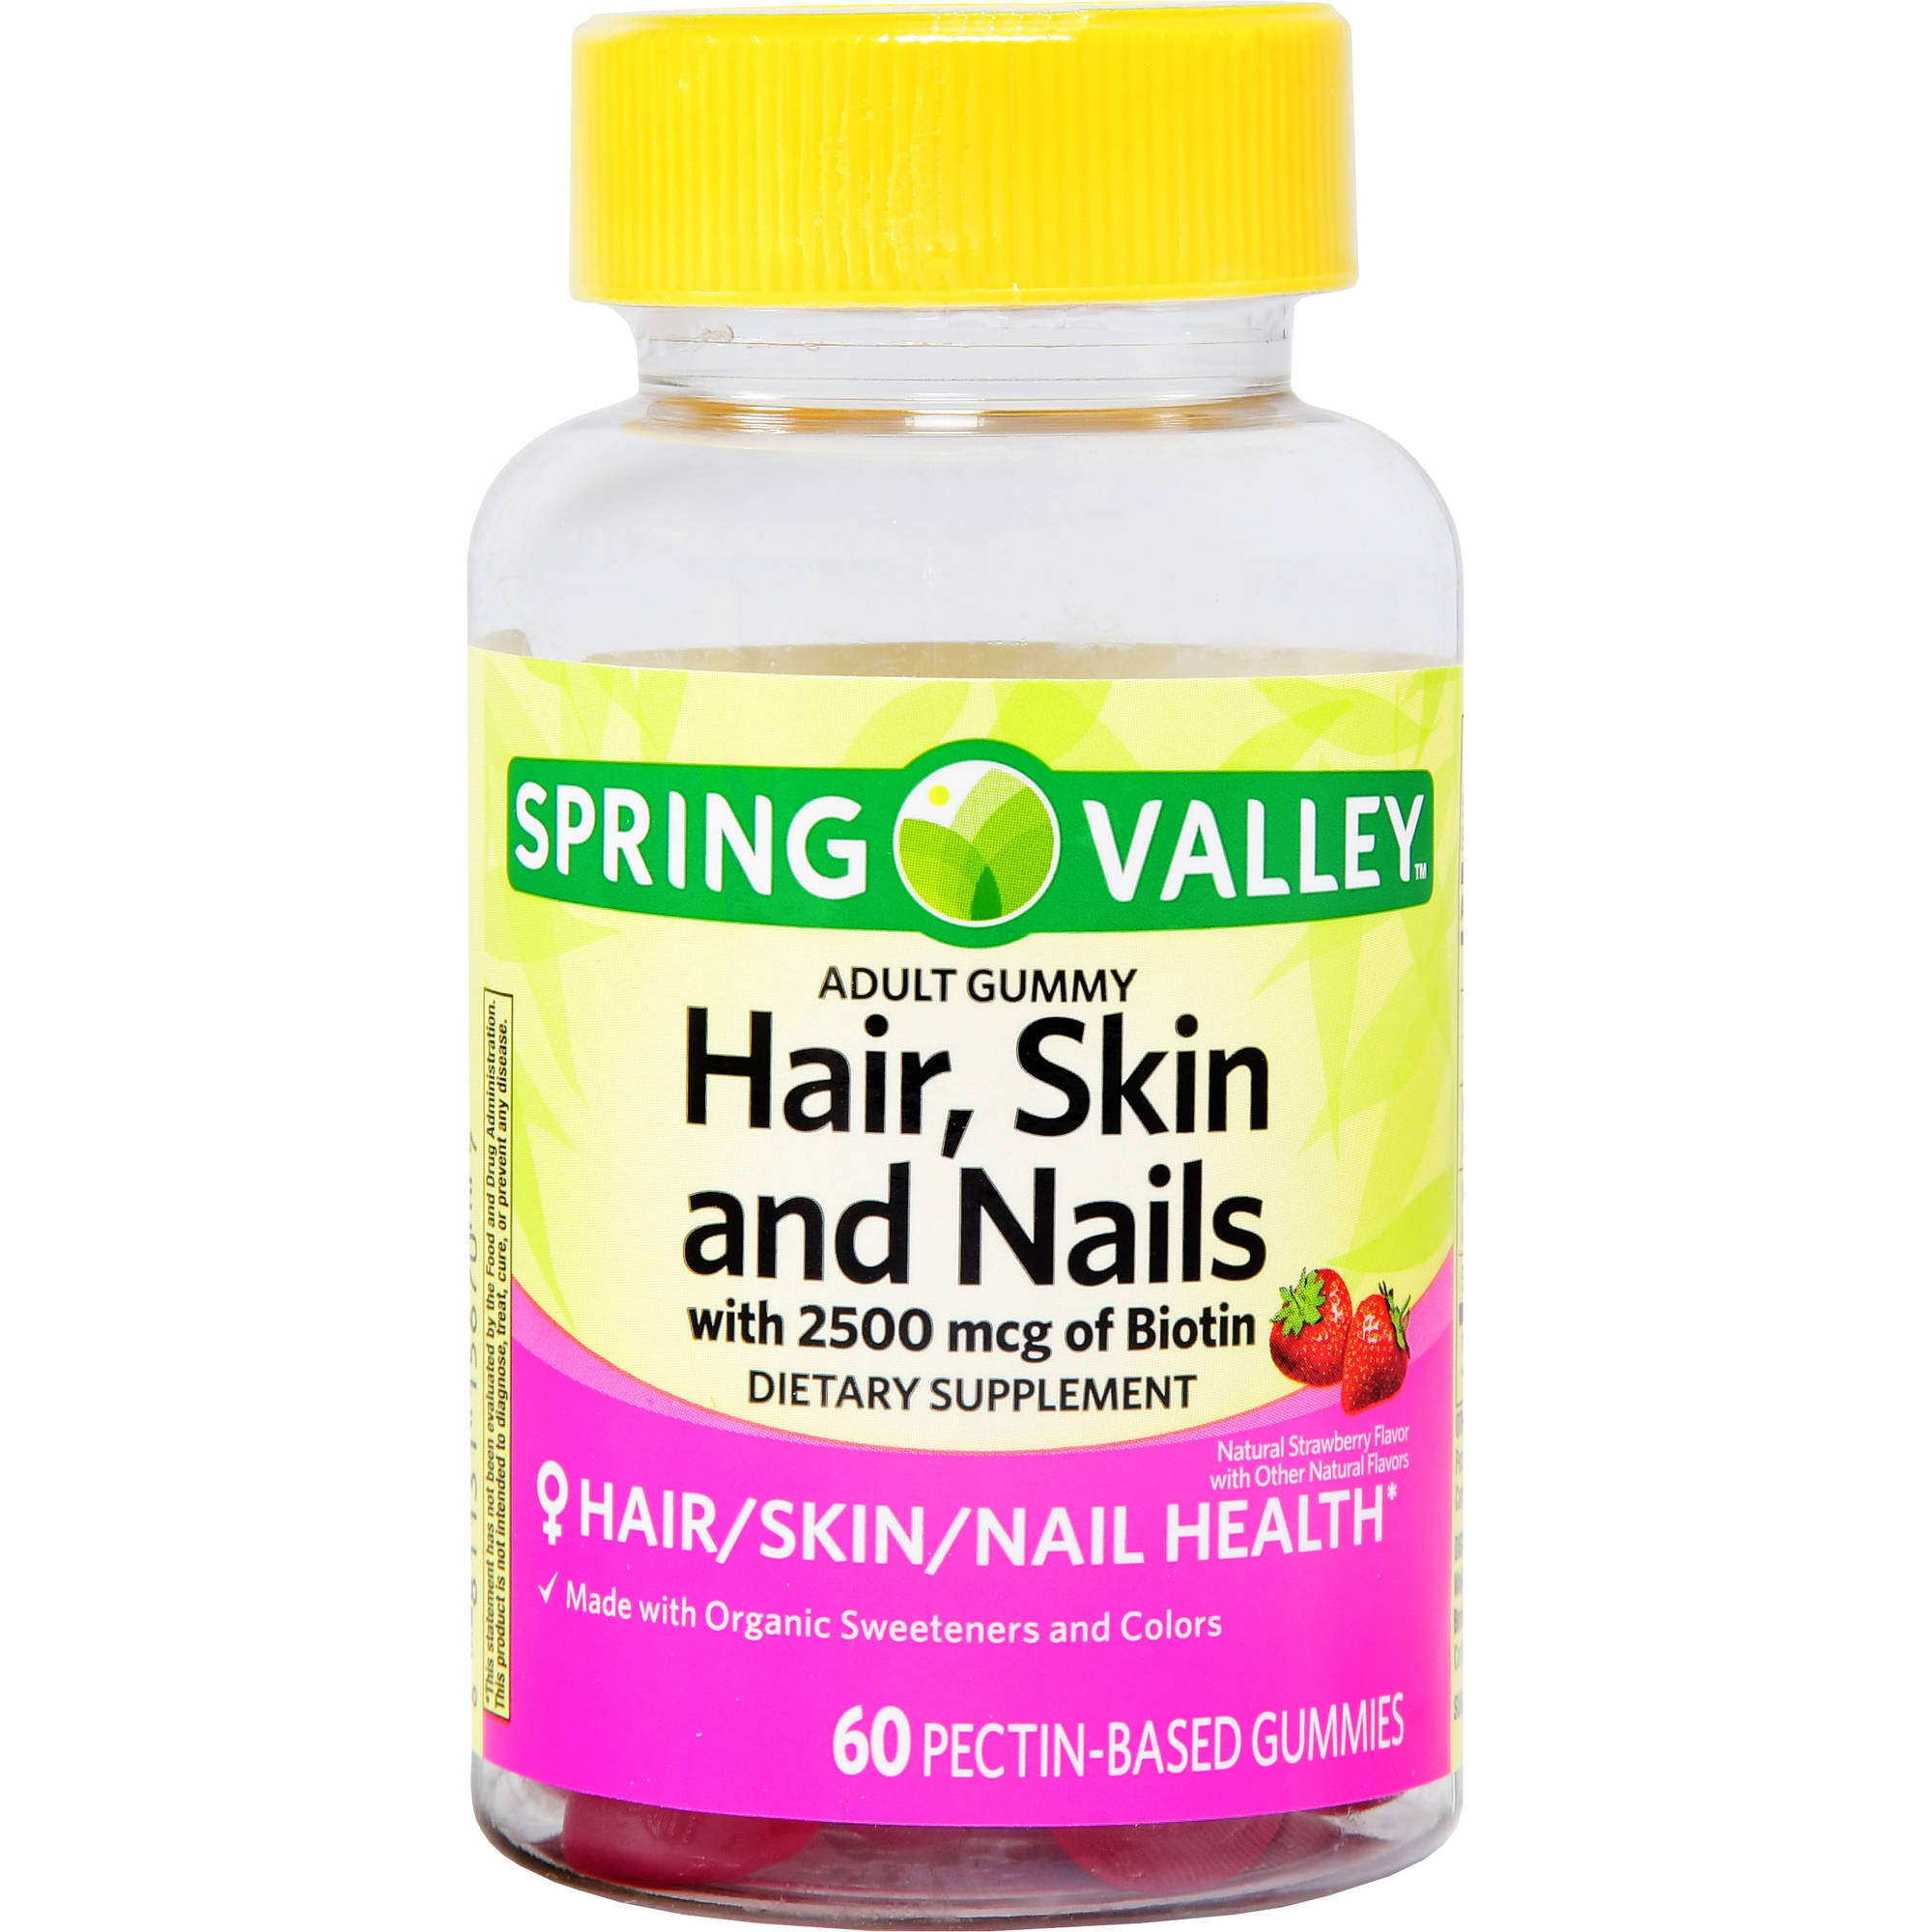 Spring Valley Adult Gummy Hair, Skin & Nails 2500 mcg of Biotin 60 ...